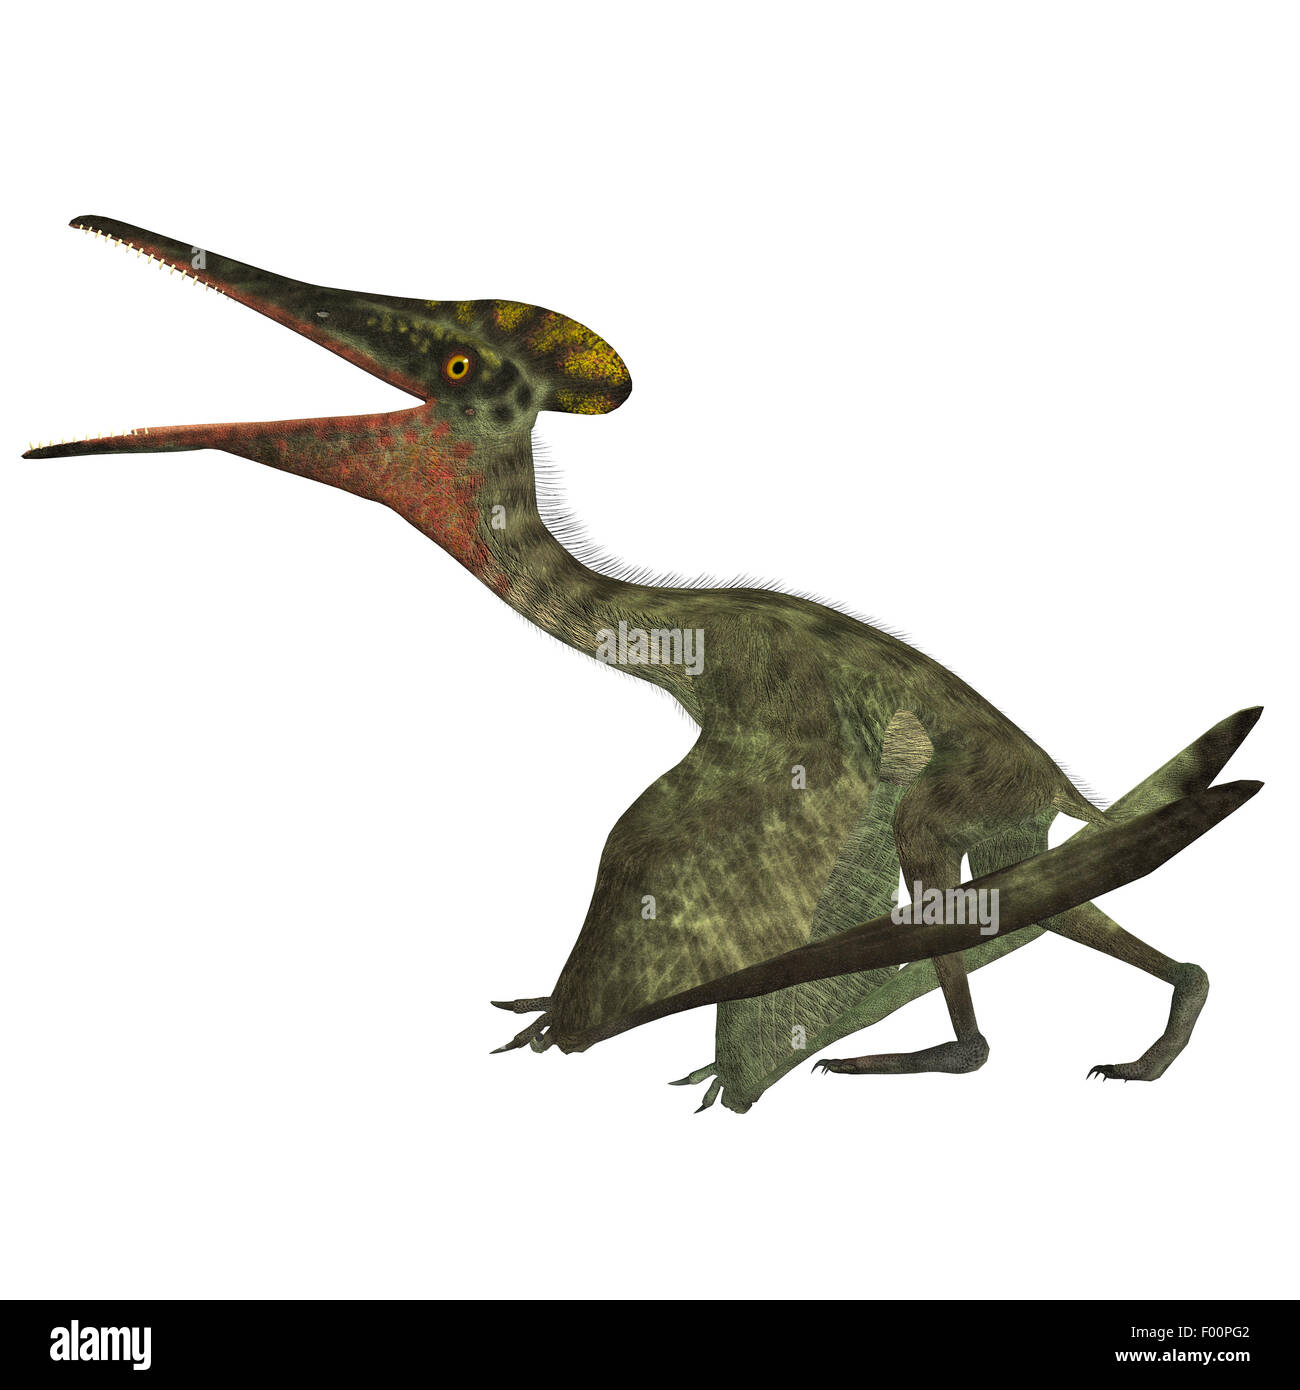 Pterodactylus was a flying carnivorous reptile that lived in the Jurassic Period of Bavaria, Germany. - Stock Image